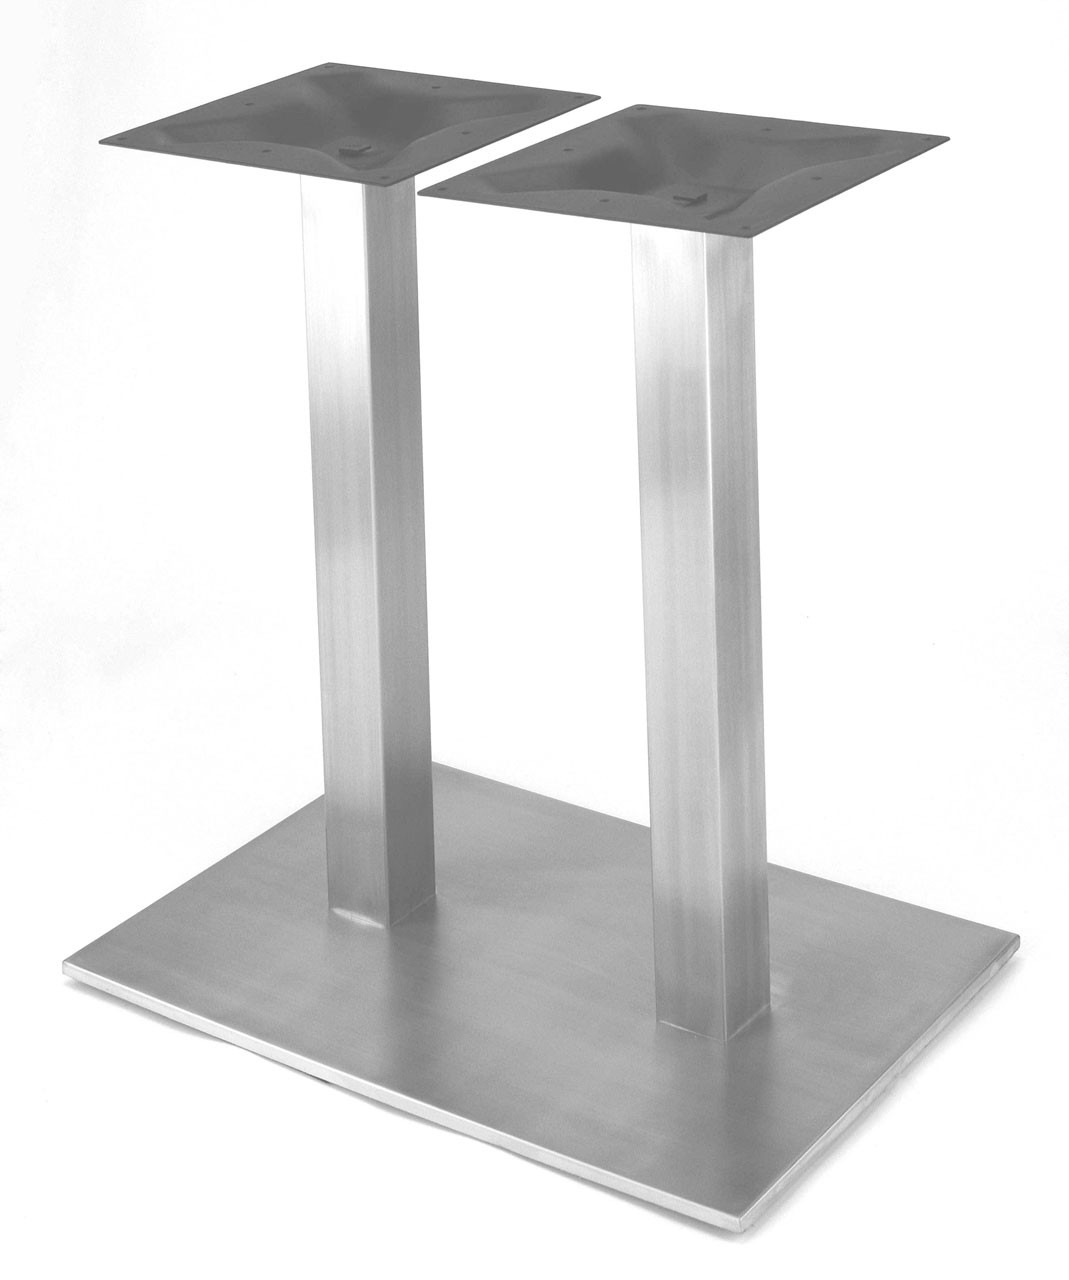 "304 Food Grade Stainless Steel, 28.2"" Dining Height, 18 x 27.5"" Rectangle Style Pedestal Base with 2 x Square Columns shown without table top."